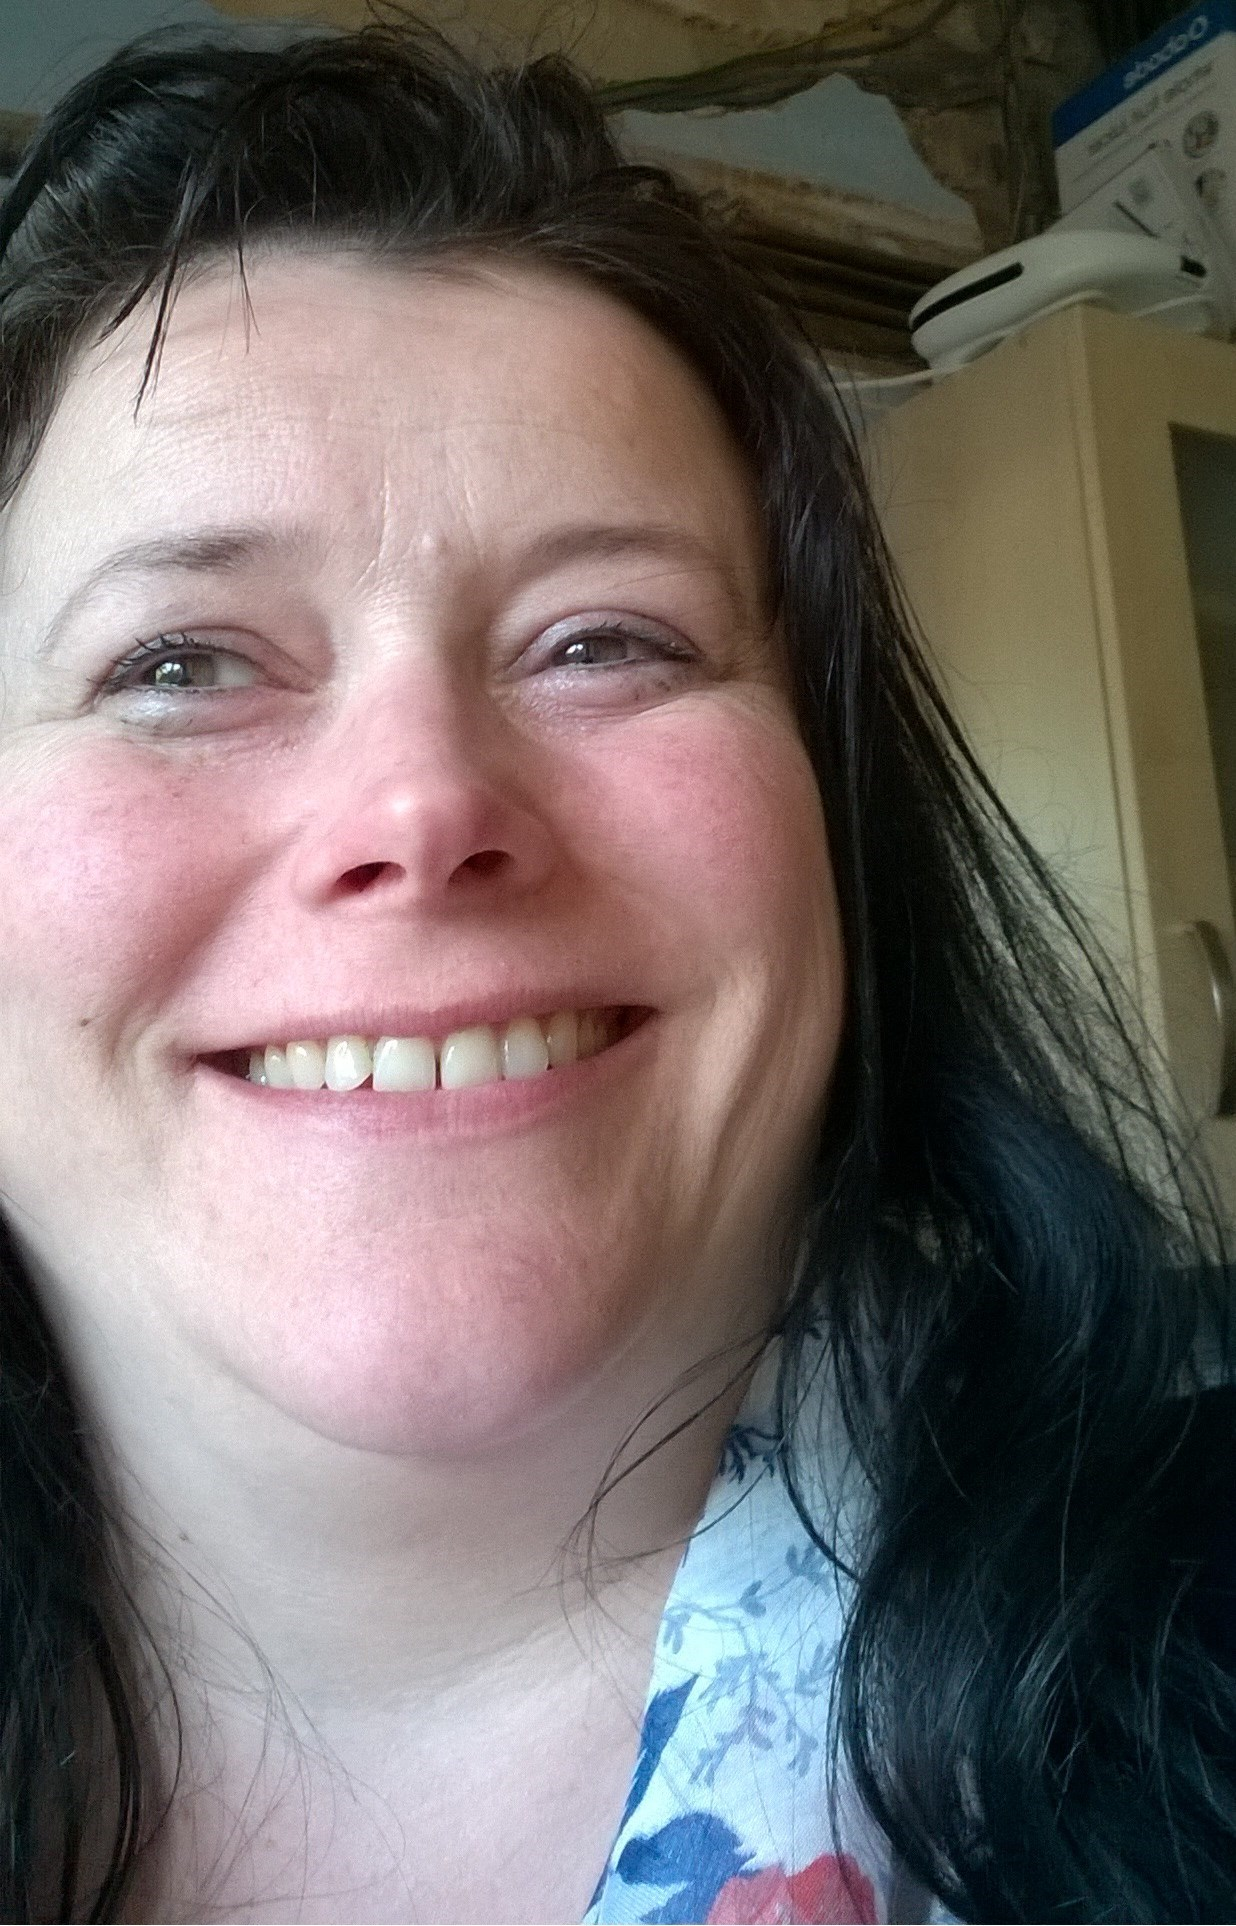 Sally's own selfie - 12th May 2015